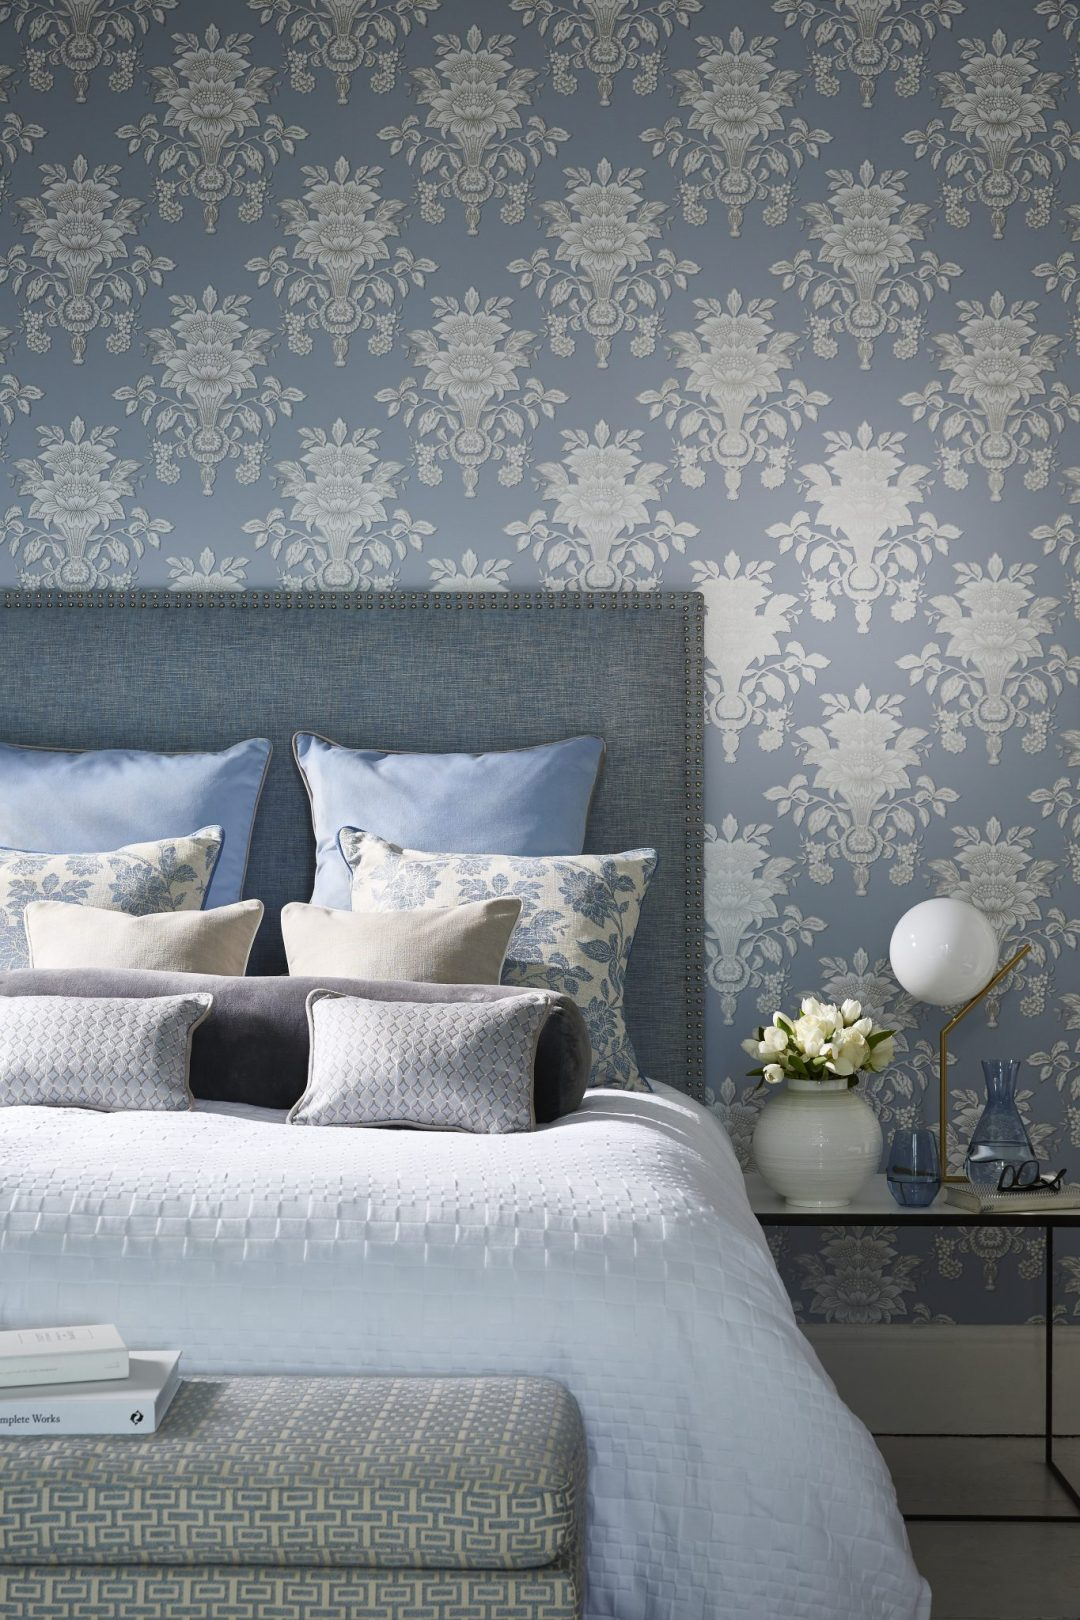 4 Wedgwood Home - Fabrics & Wallcoverings by Blendworth Tonquin Weave 4, Renaissance Weave 1, Tonquin Wallcovering 5